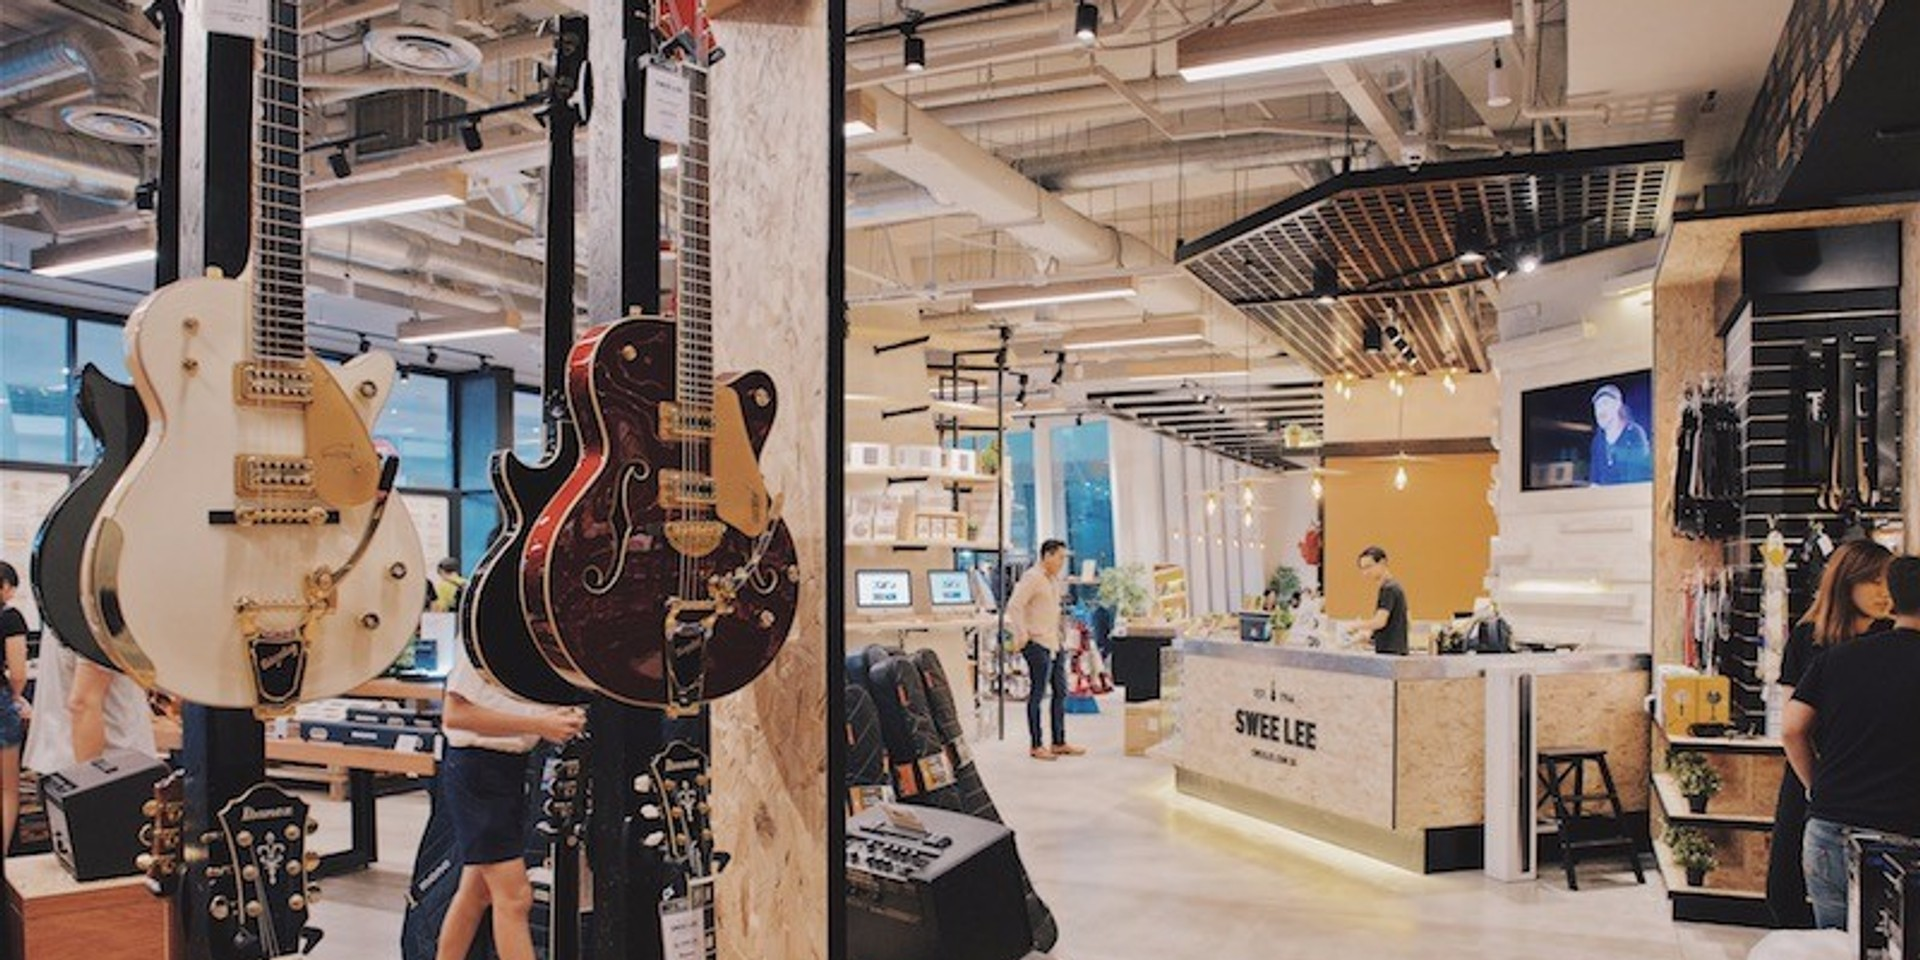 Swee Lee launches new flagship store at The Star Vista